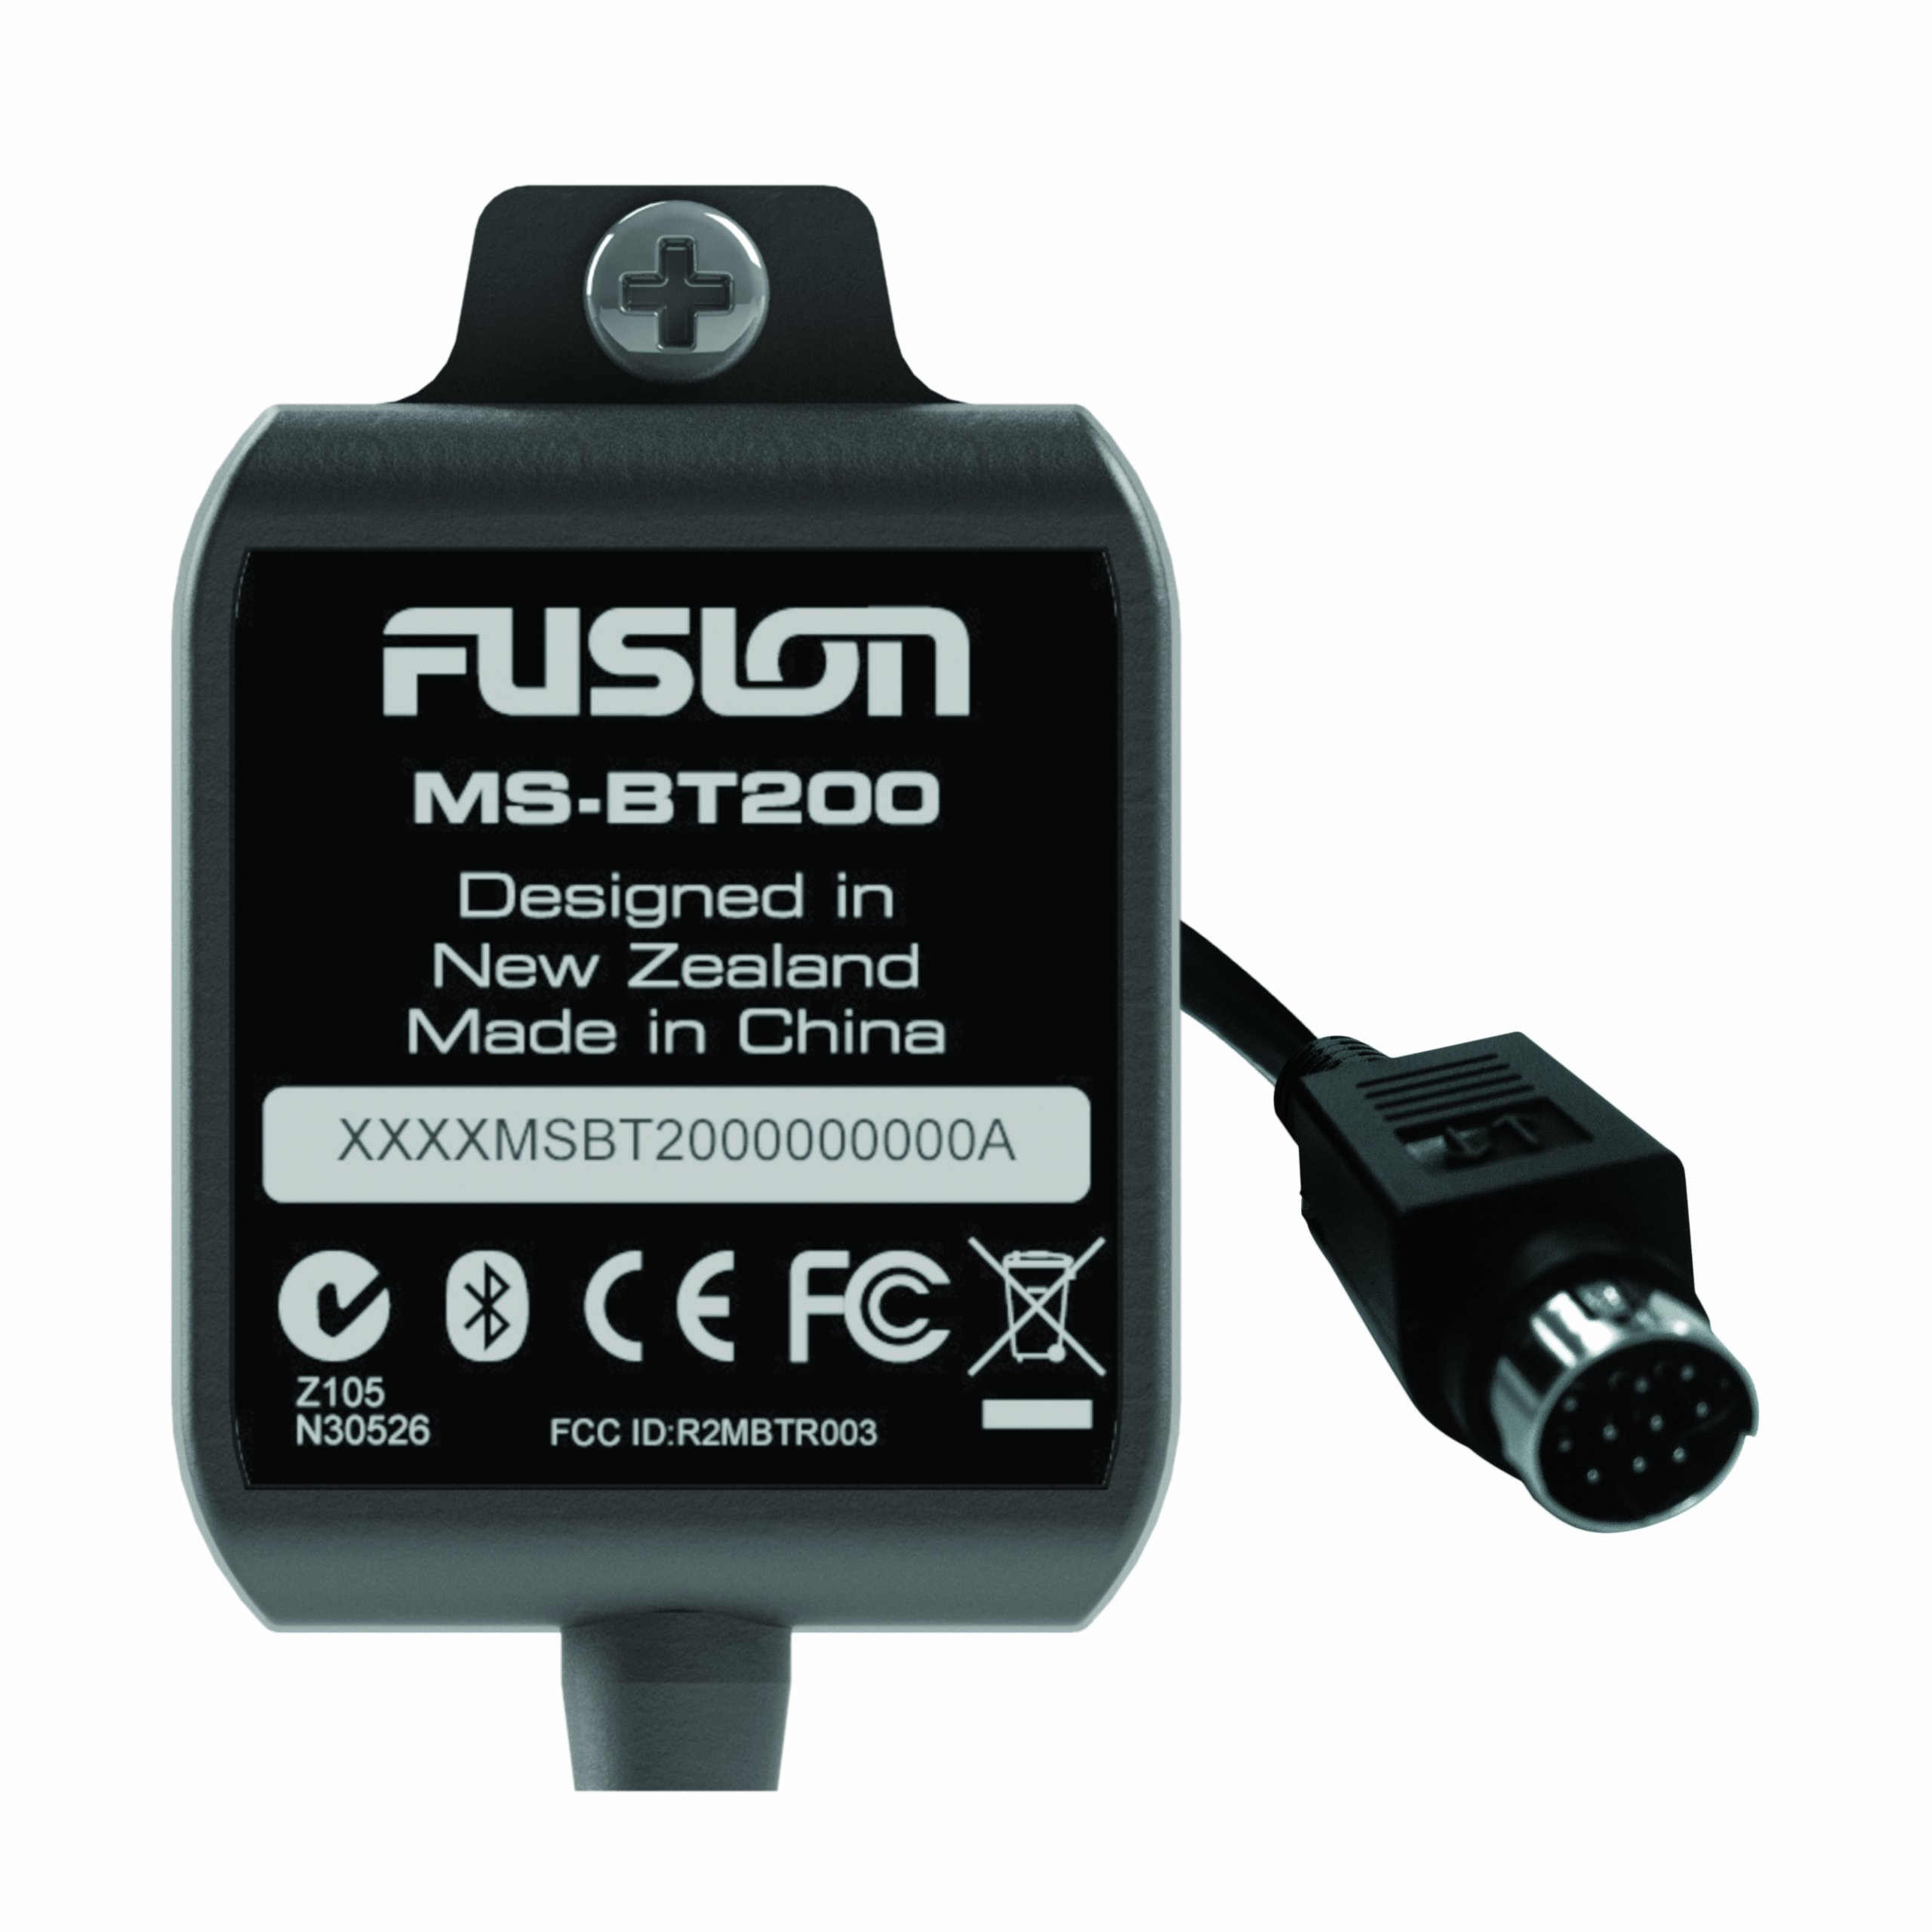 3.5mm-2xRCA Aux Panel Mount Cable 010-12381-00 USB Fusion Garmin MS-CBUSB3.5 2m